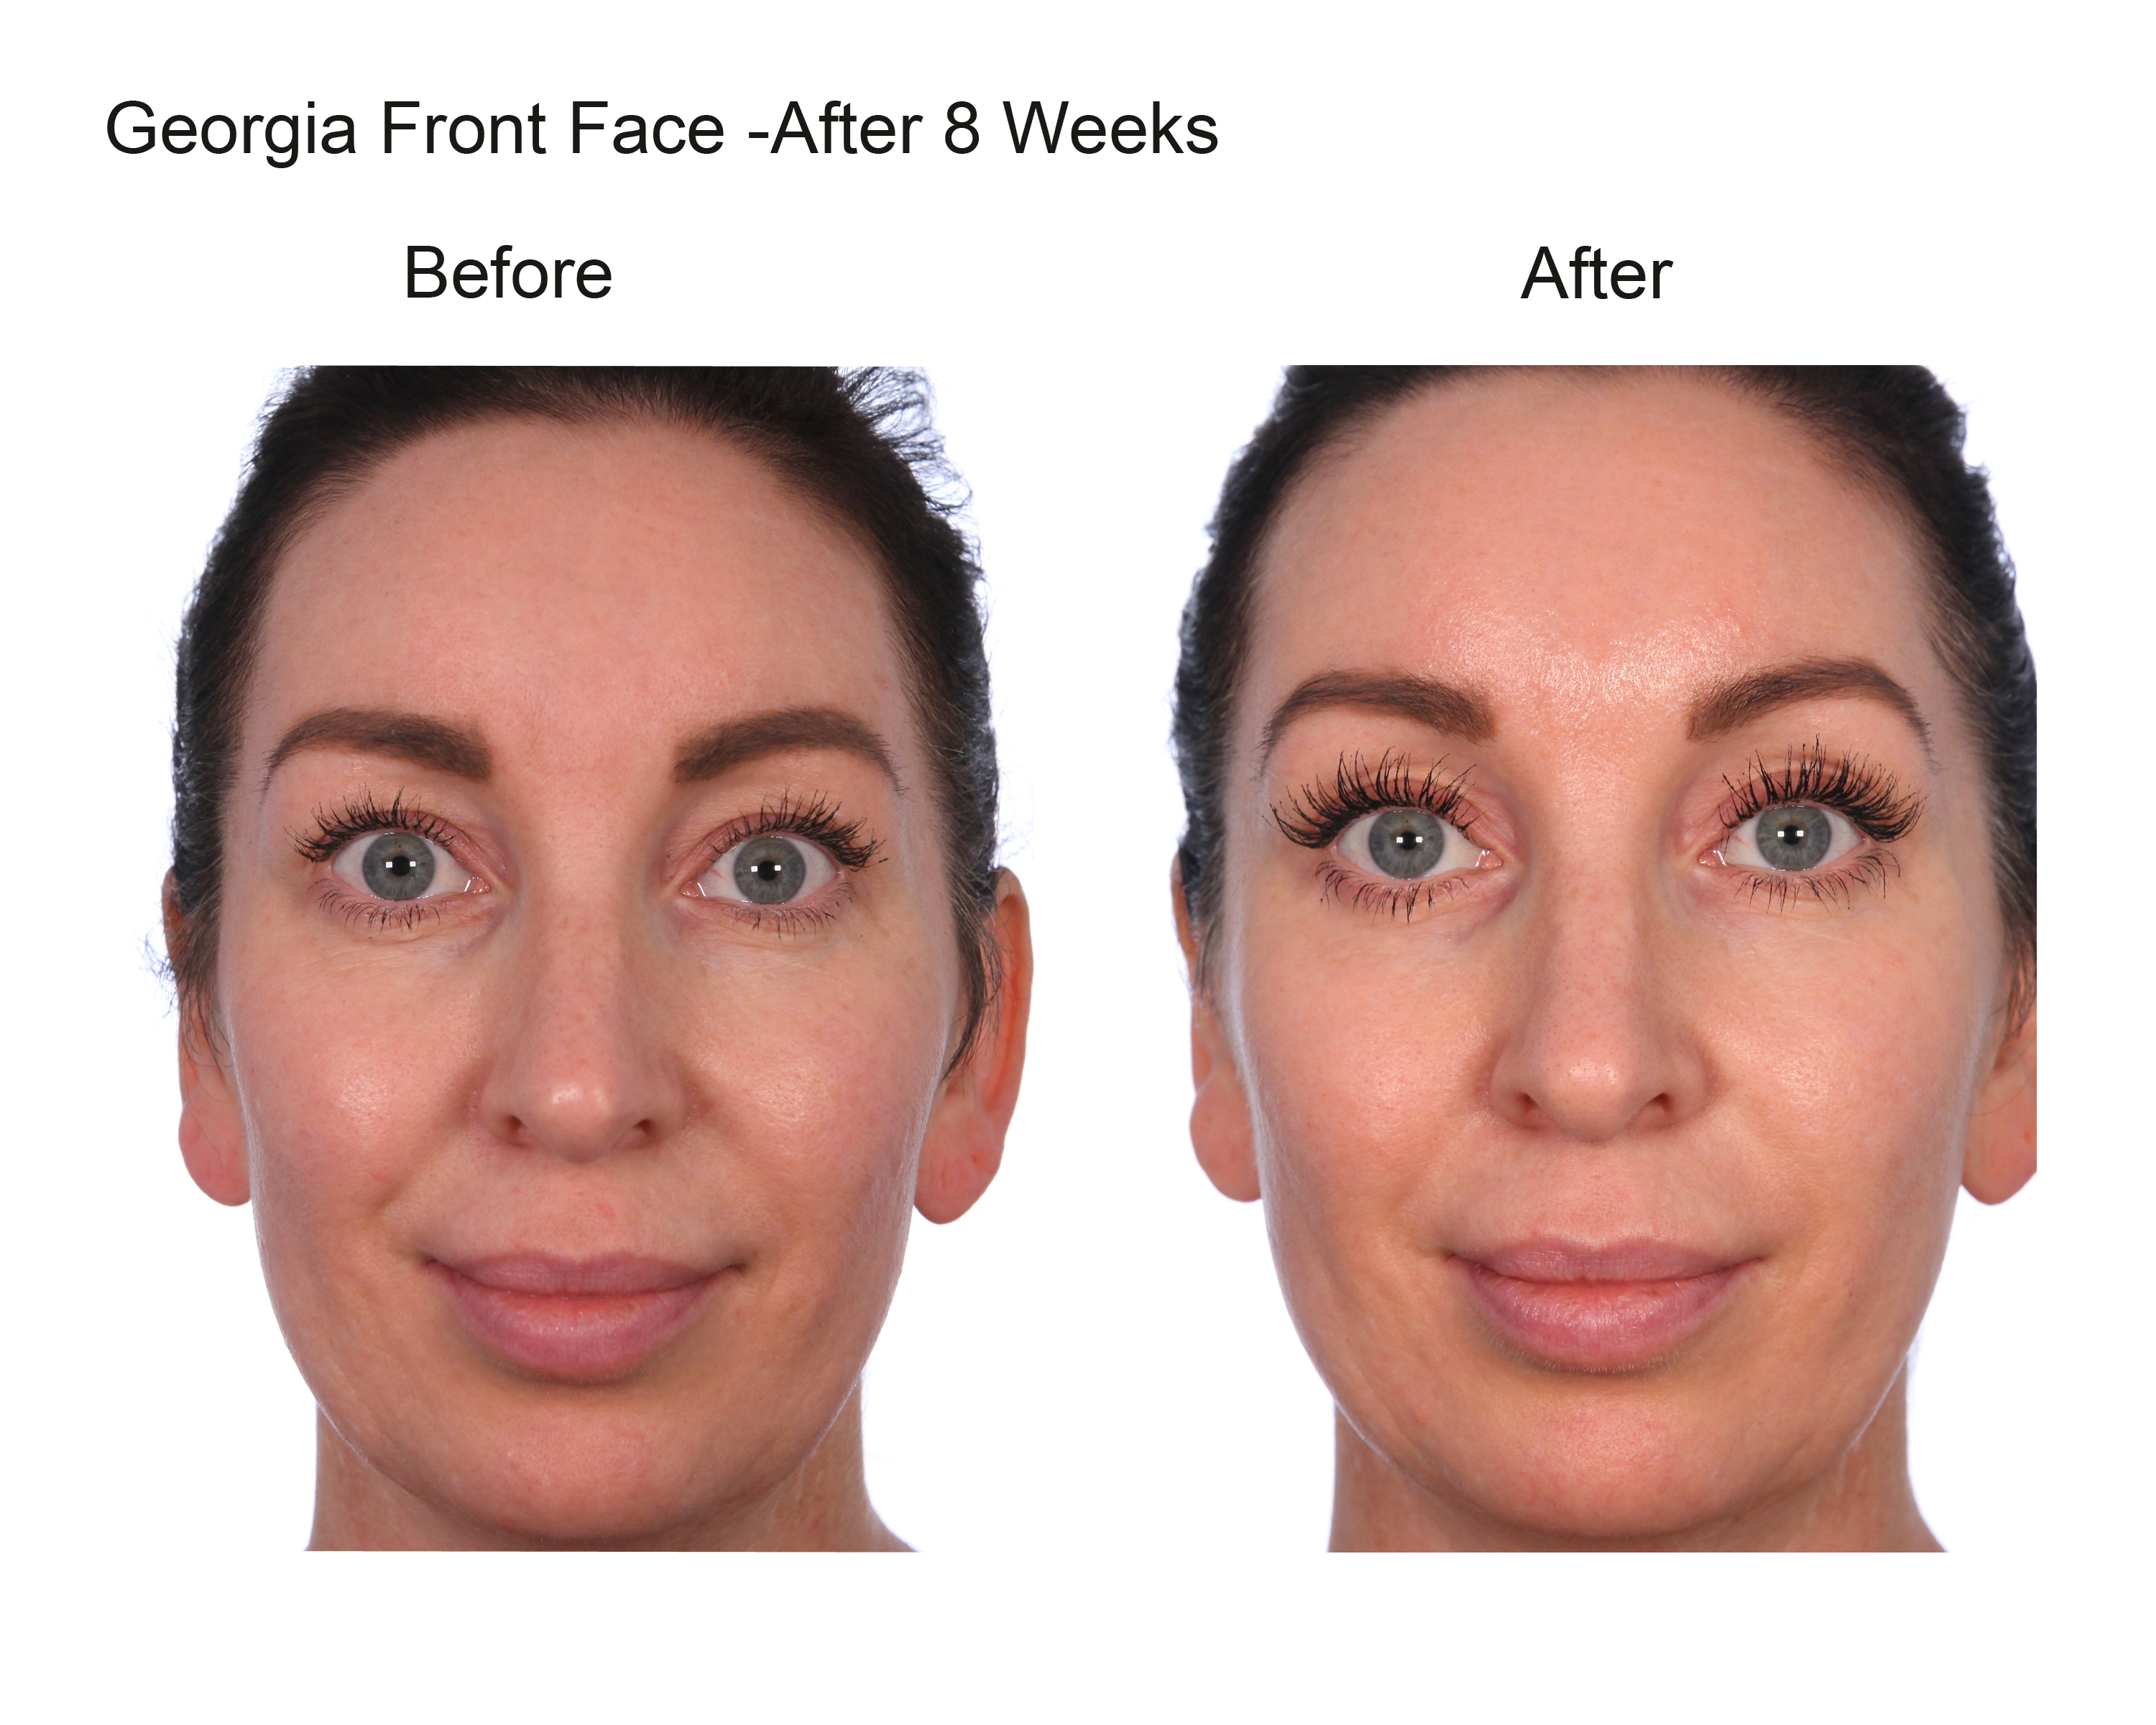 georgia front face after 8 weeks